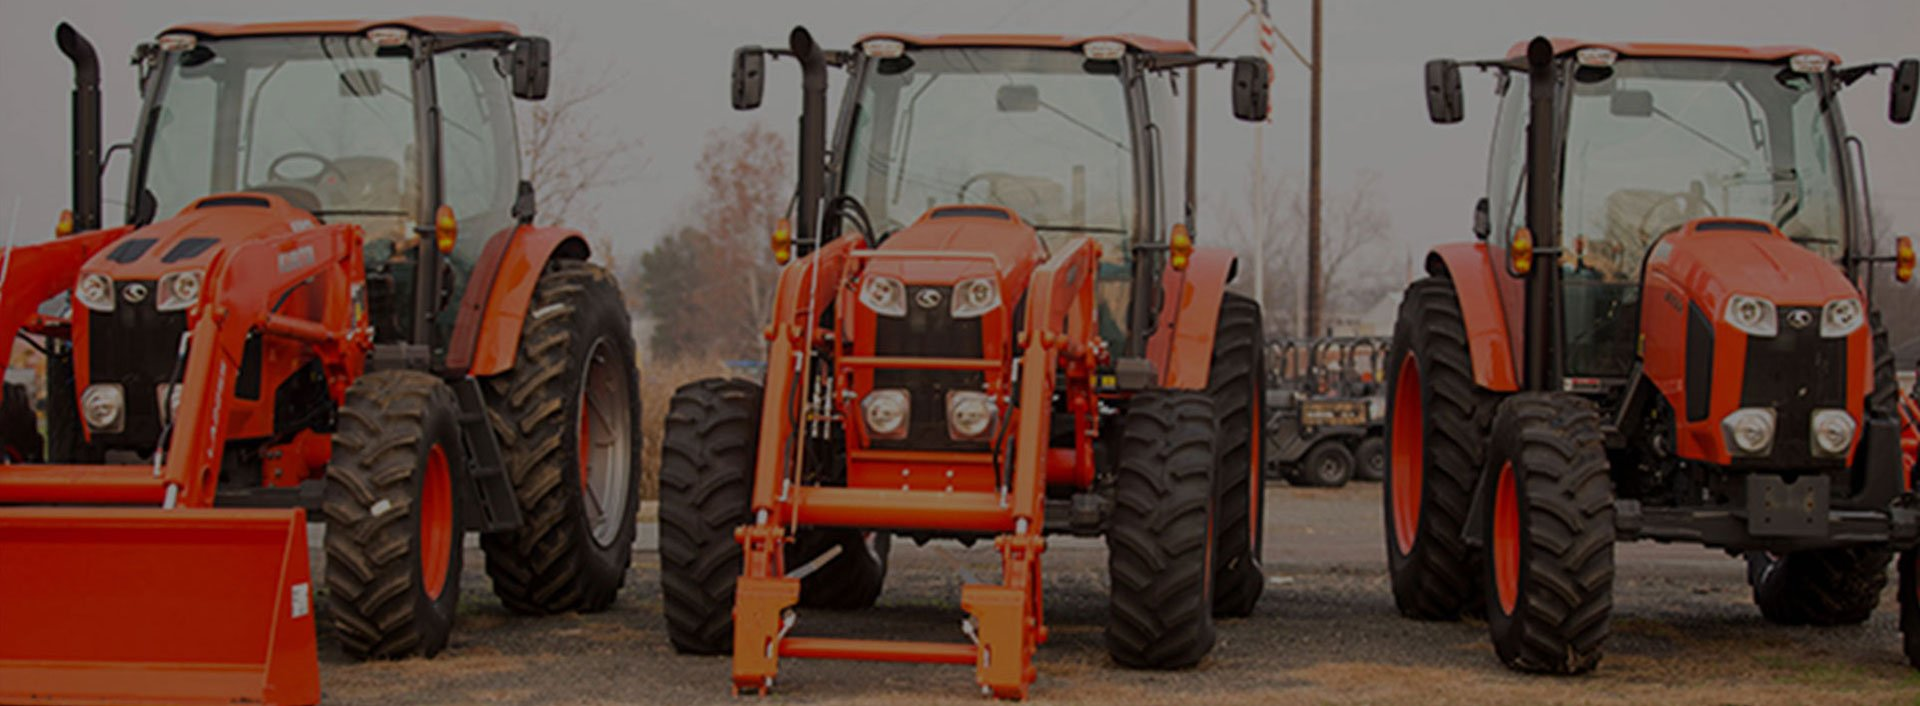 Ventrac Farm Equipment For Sale By Piedmont Power - 2